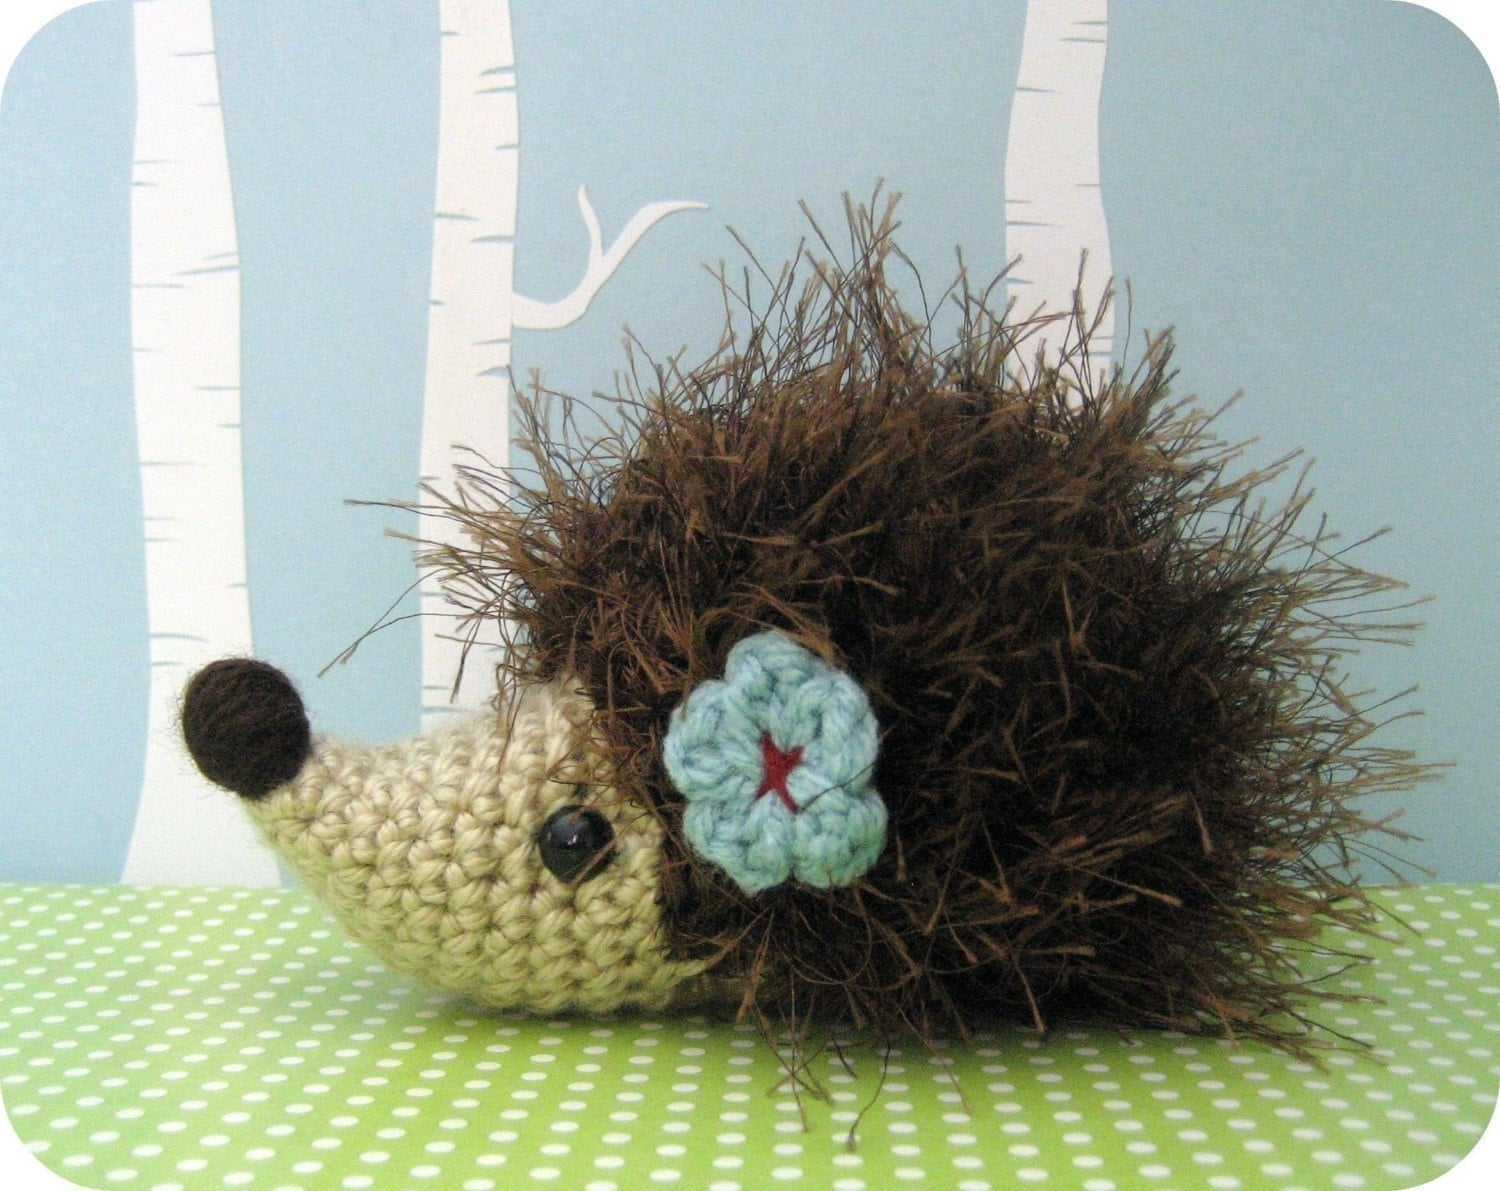 Baby Hedgehog His Mommy Crochet Pattern 2   Flickr – Photo Sharing!